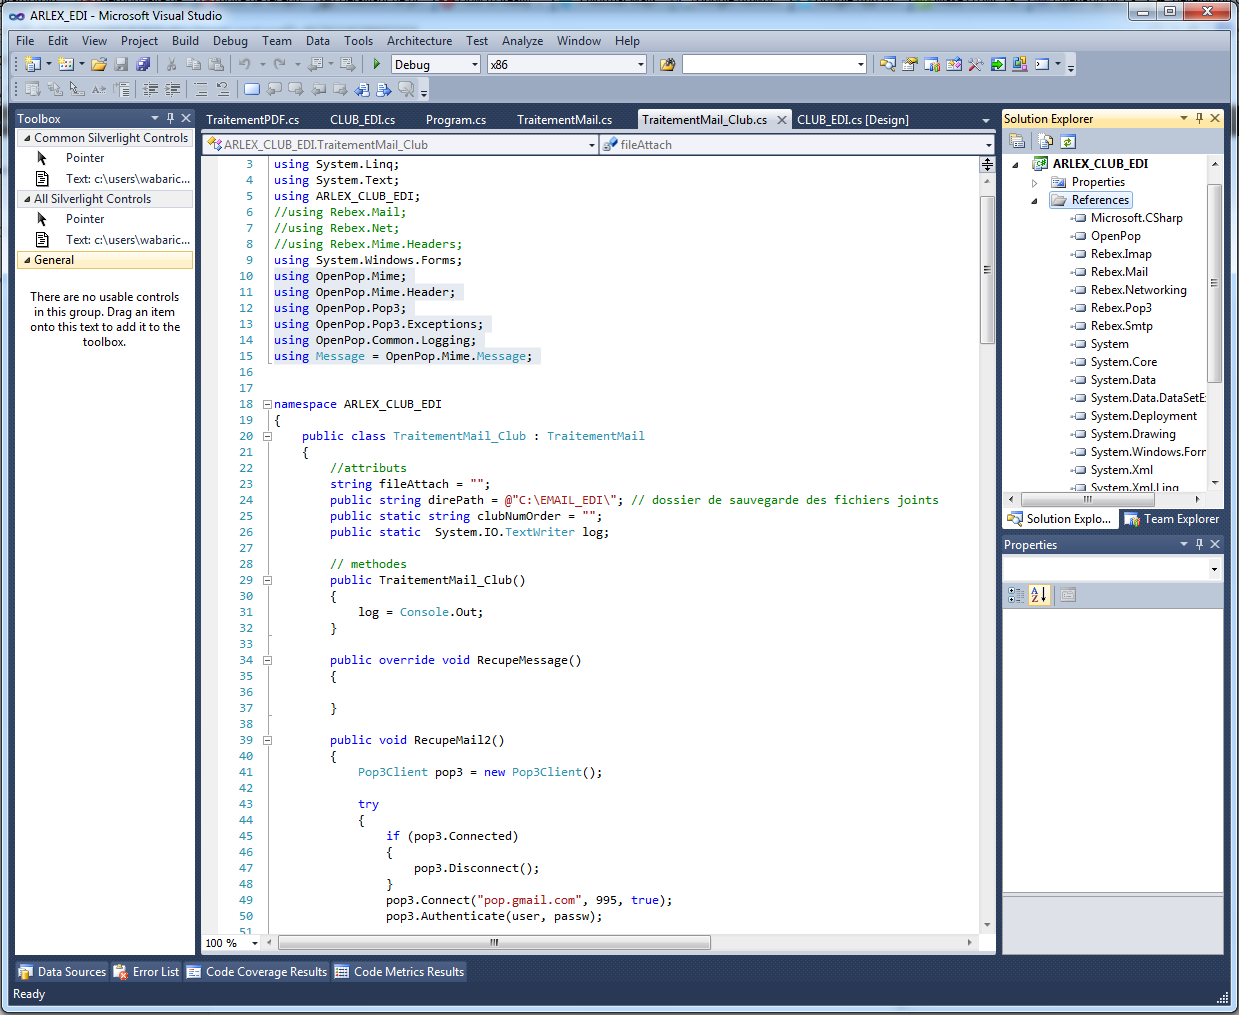 openpop.net sous visual studio belgian-droid